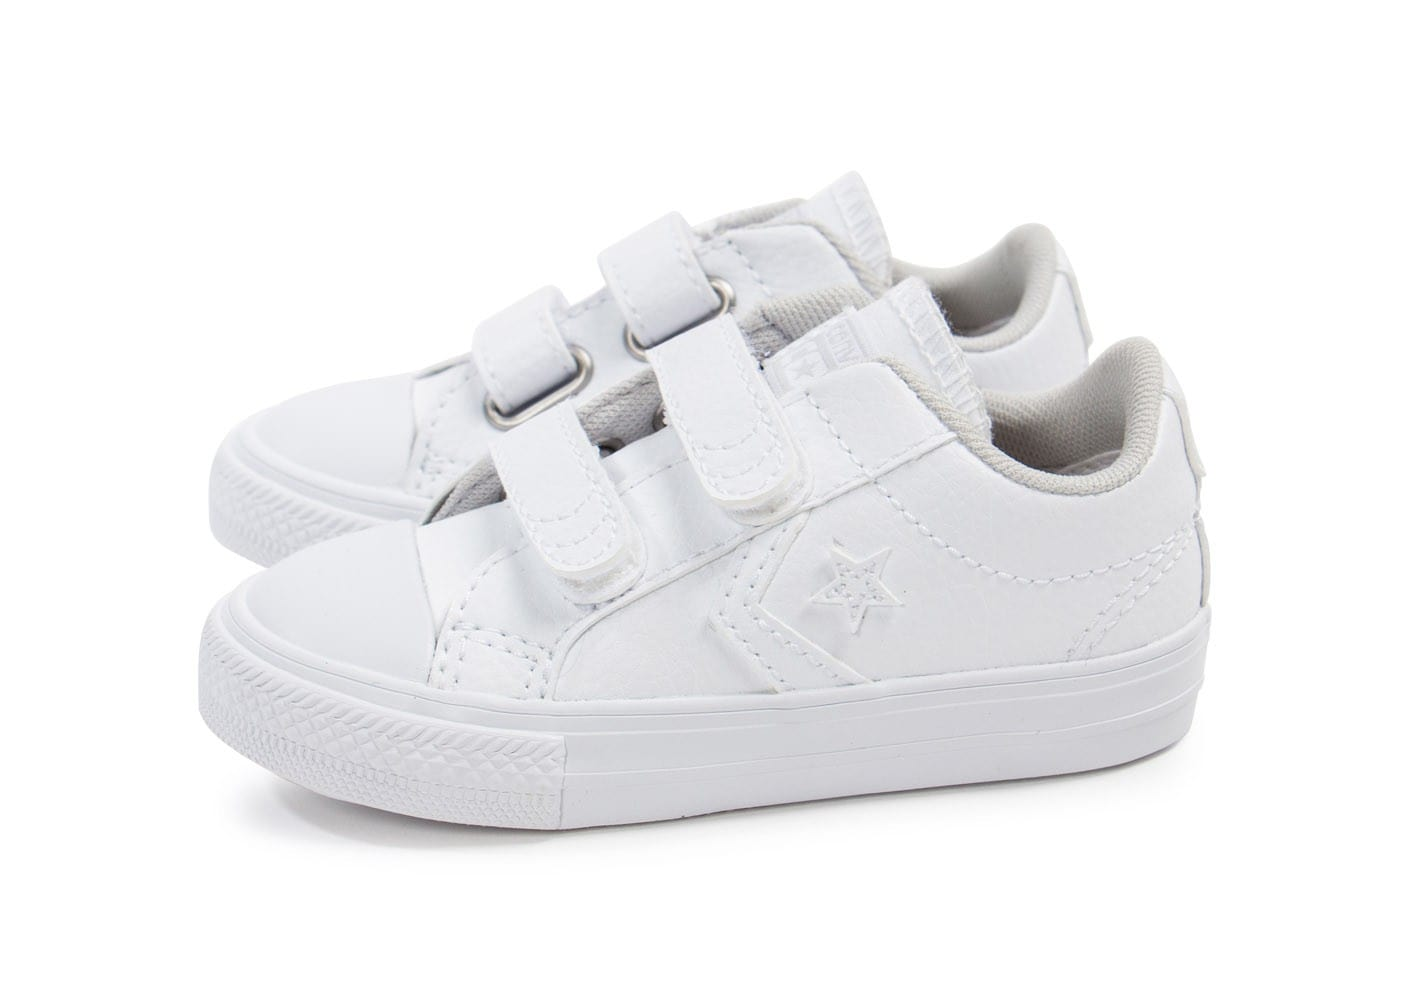 converse star player b b cuir blanche chaussures toutes les baskets sold es chausport. Black Bedroom Furniture Sets. Home Design Ideas